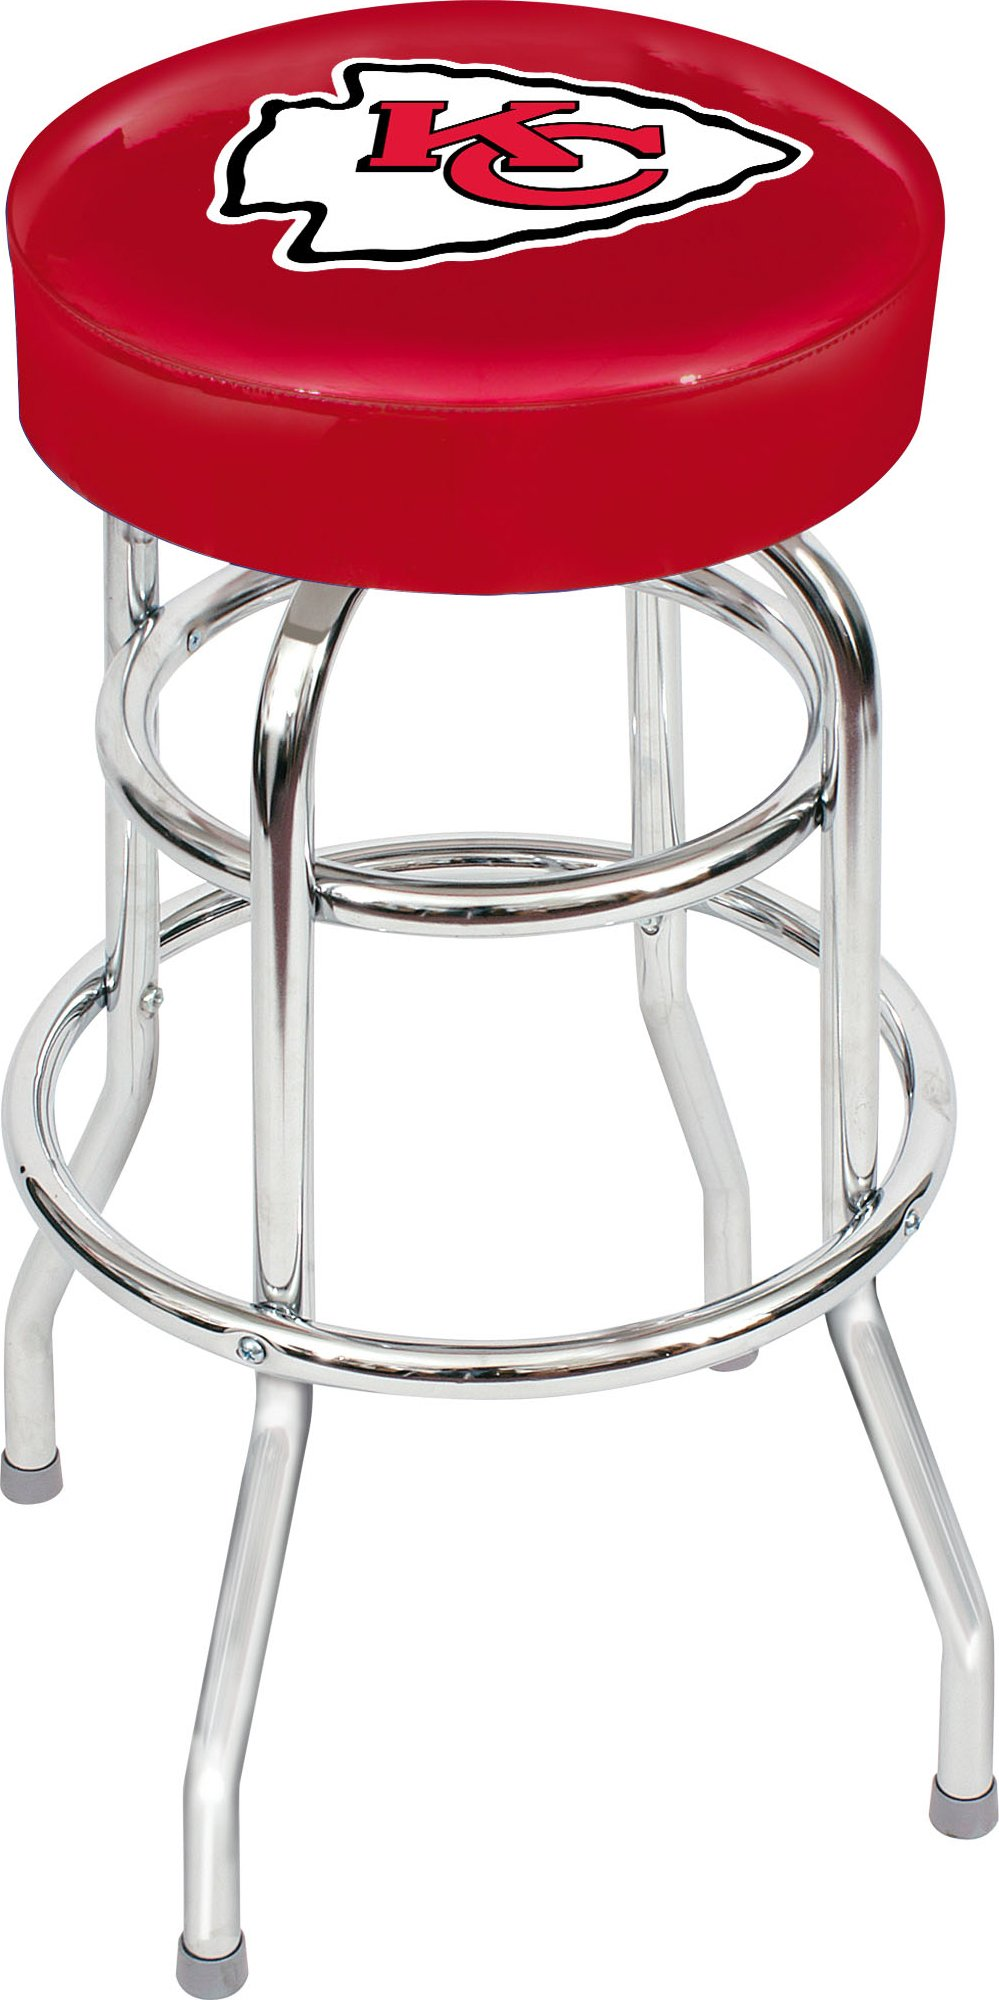 Imperial Officially Licensed NFL Furniture: Swivel Seat Bar Stool, Kansas City Chiefs